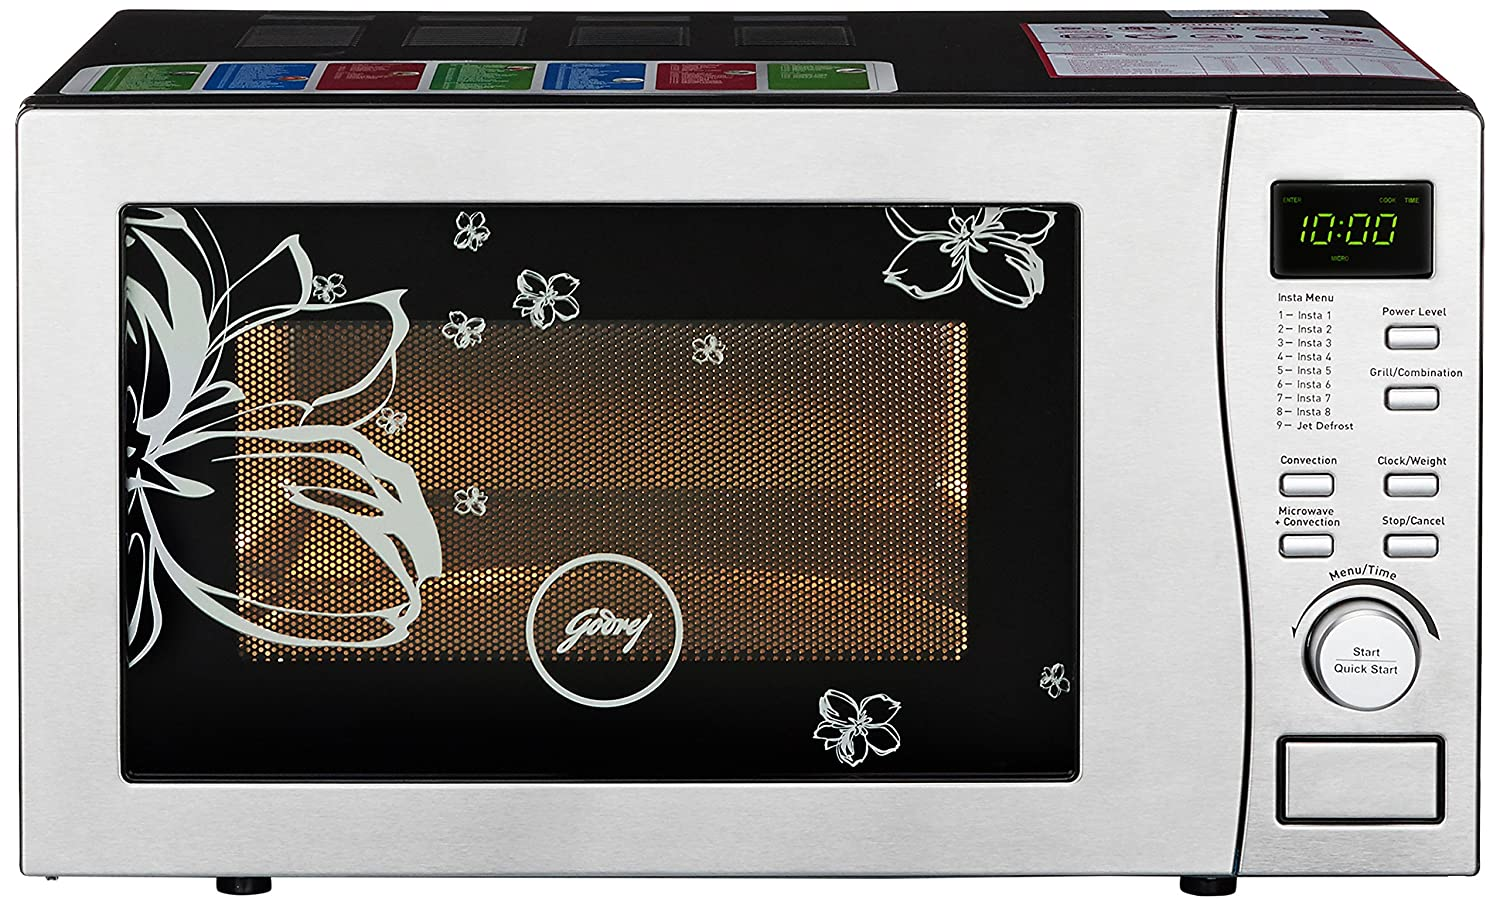 Godrej 19 L Convection Microwave Oven (GMX 519 CP1, White Rose): Amazon.in:  Home & Kitchen